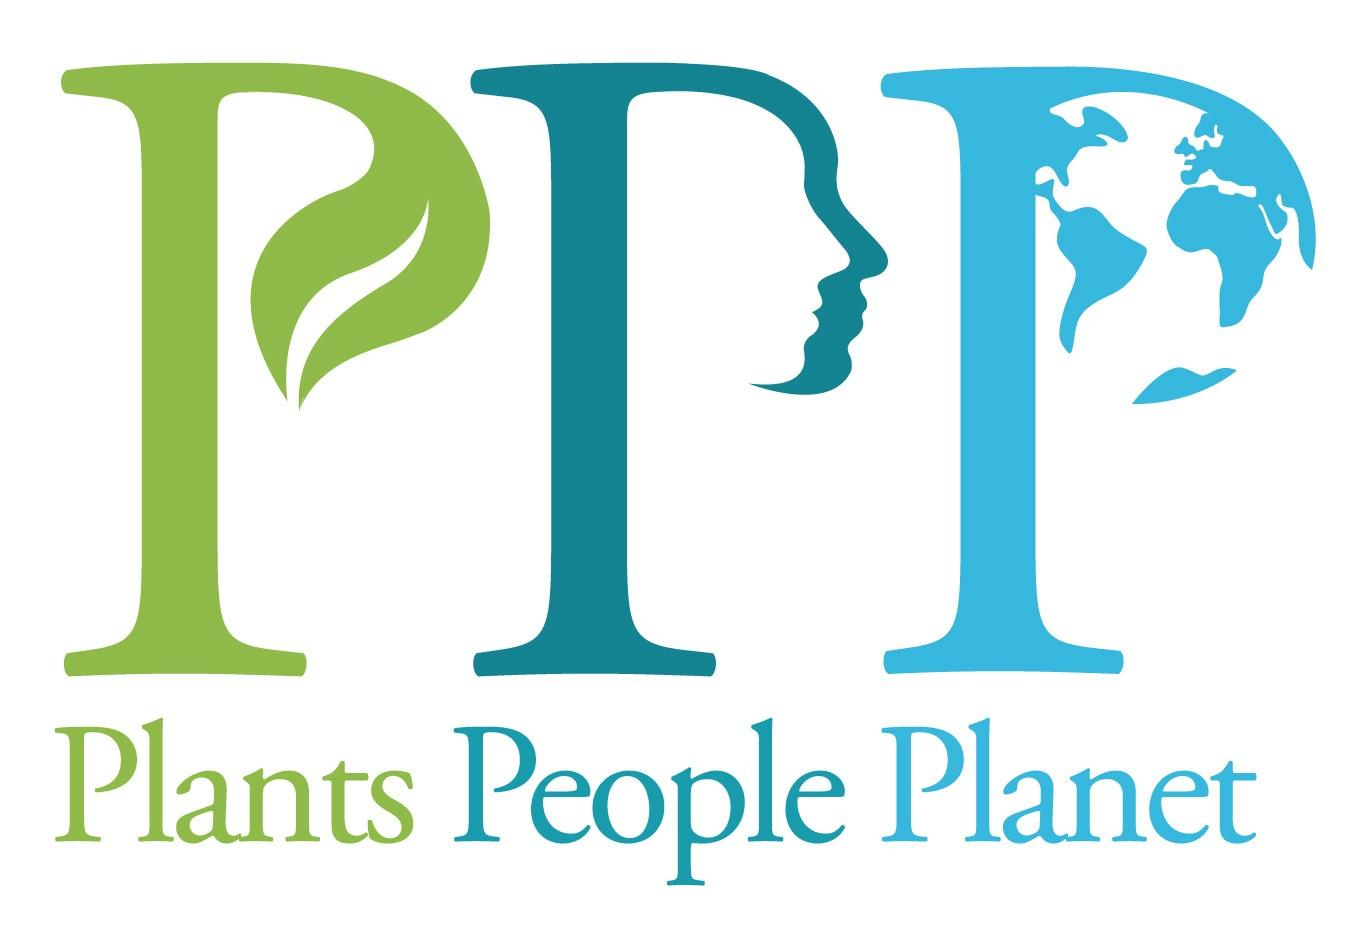 Plants, People, Planet